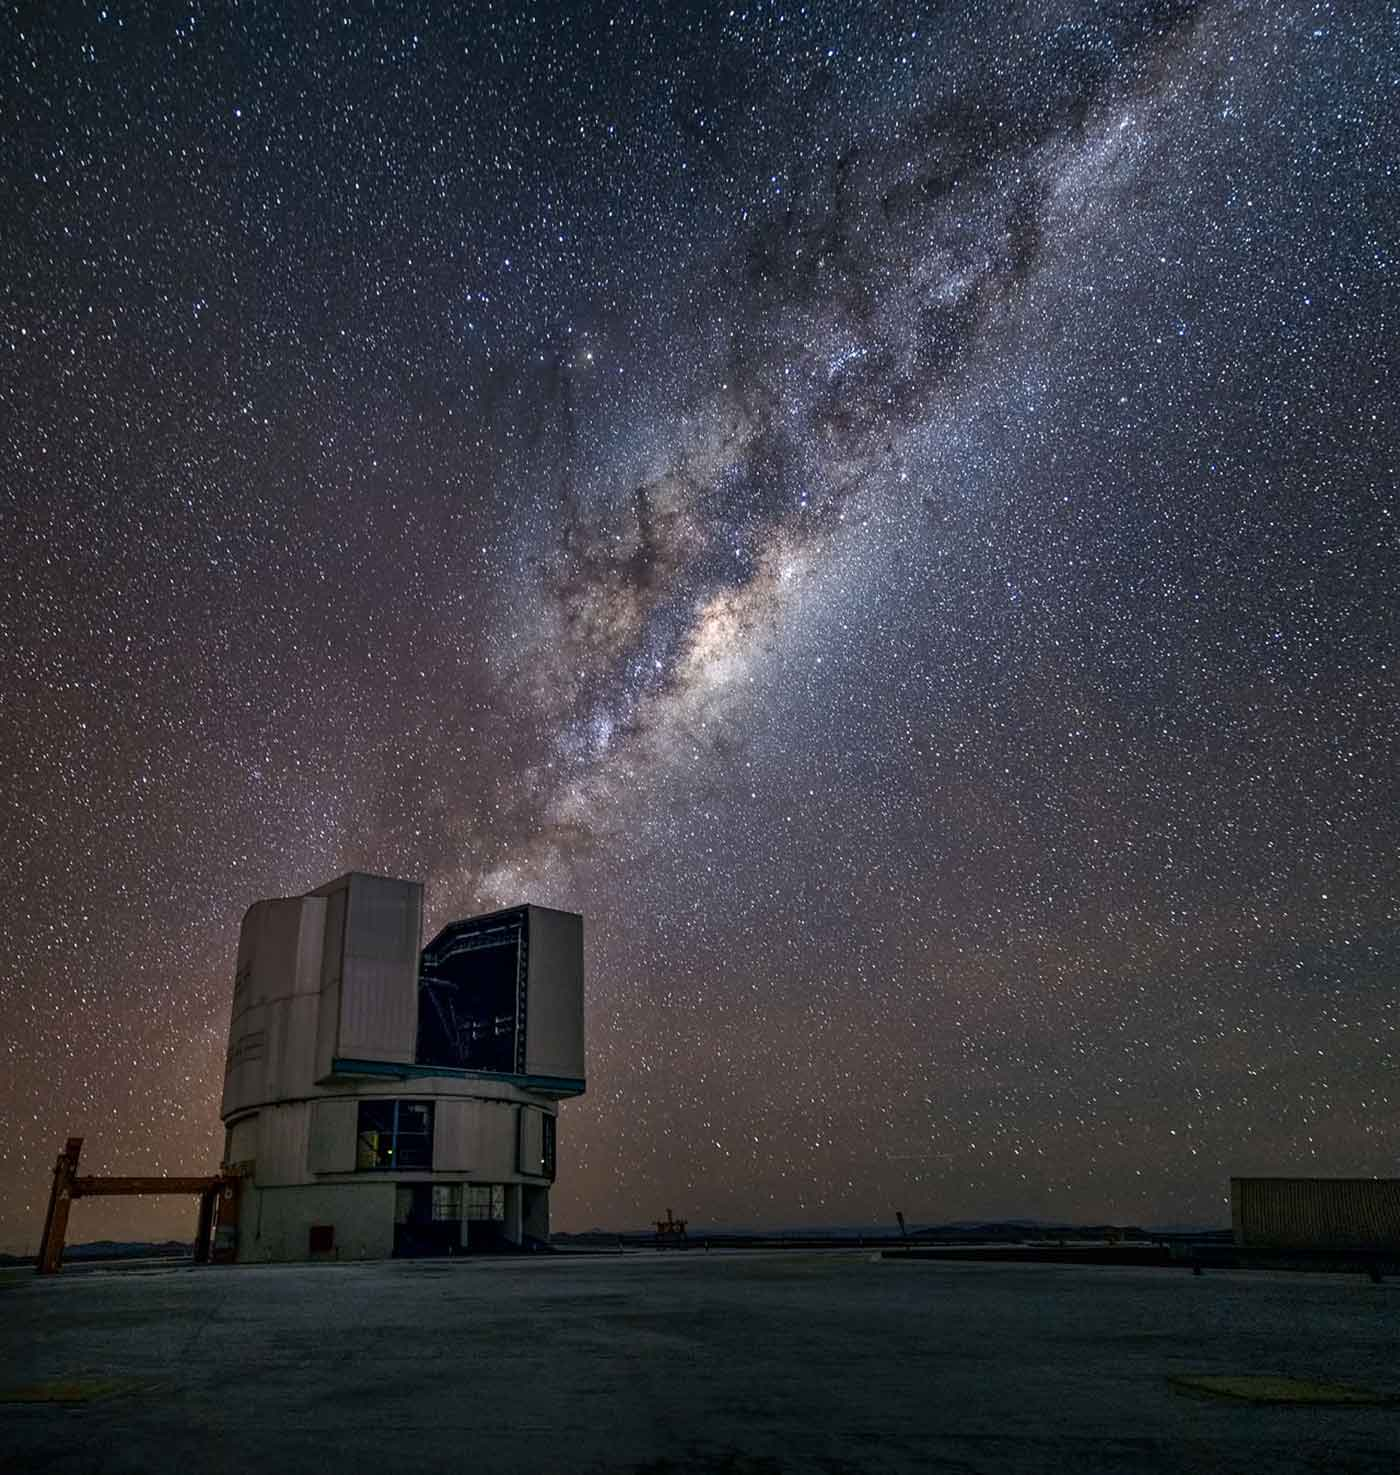 The Milky Way from Chile's Paranal Observatory.